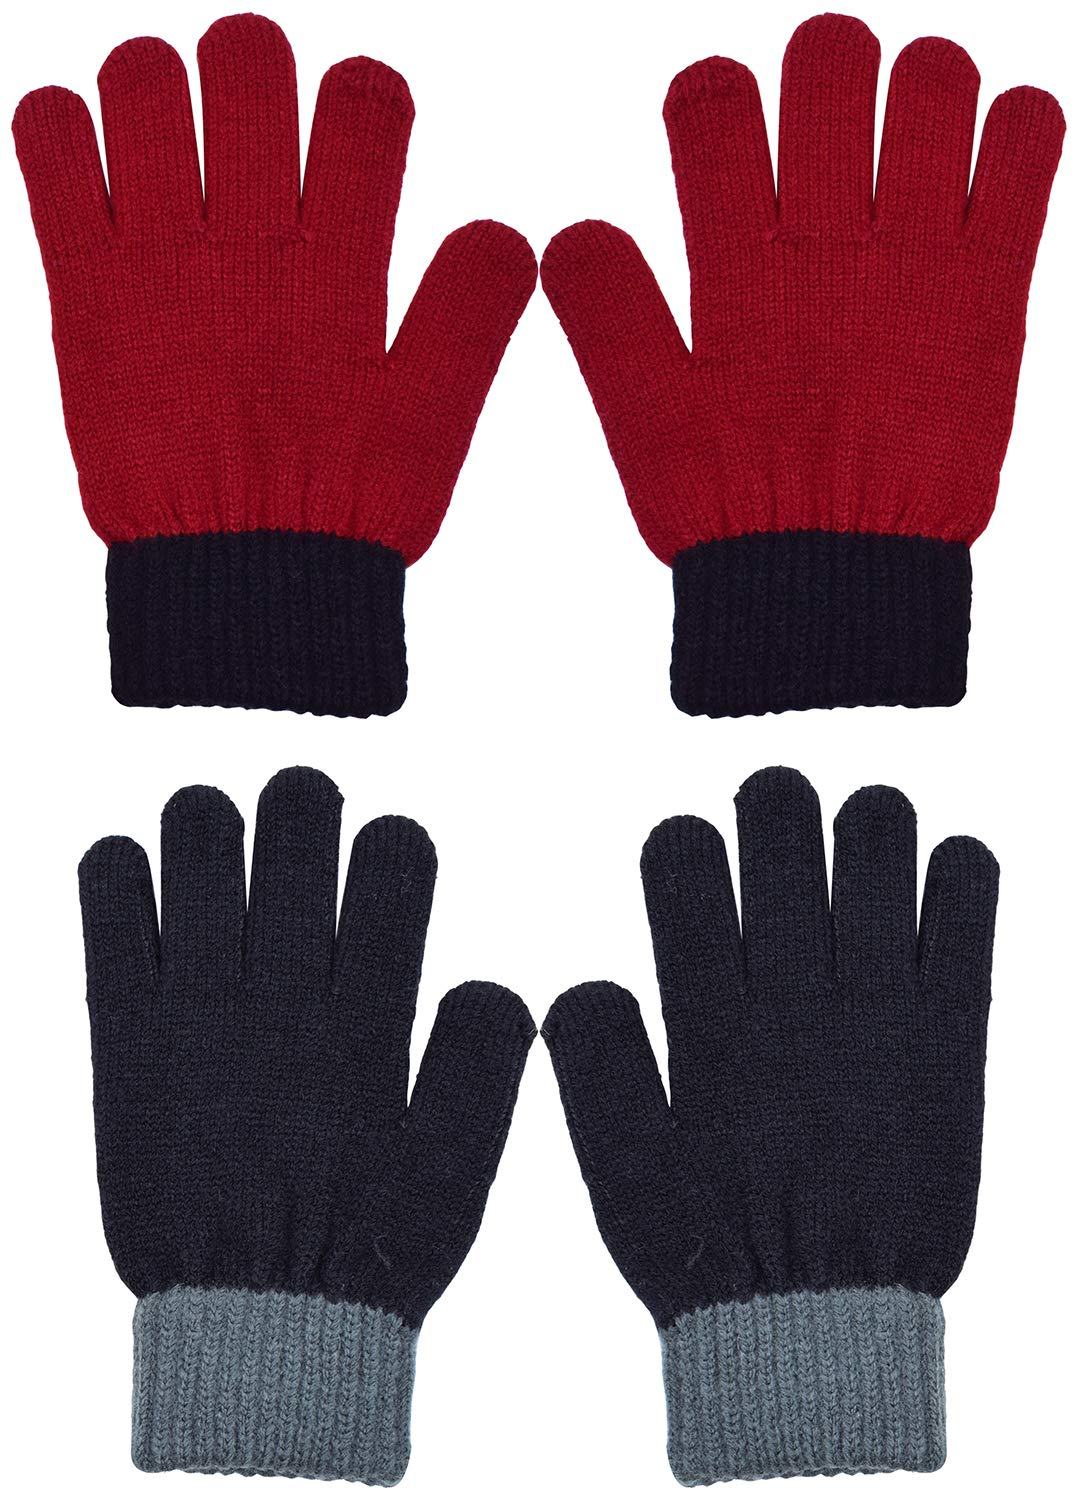 WDSKY Kids Gloves Winter Magic Wool Knit Stretchy 2 Pairs Red Black